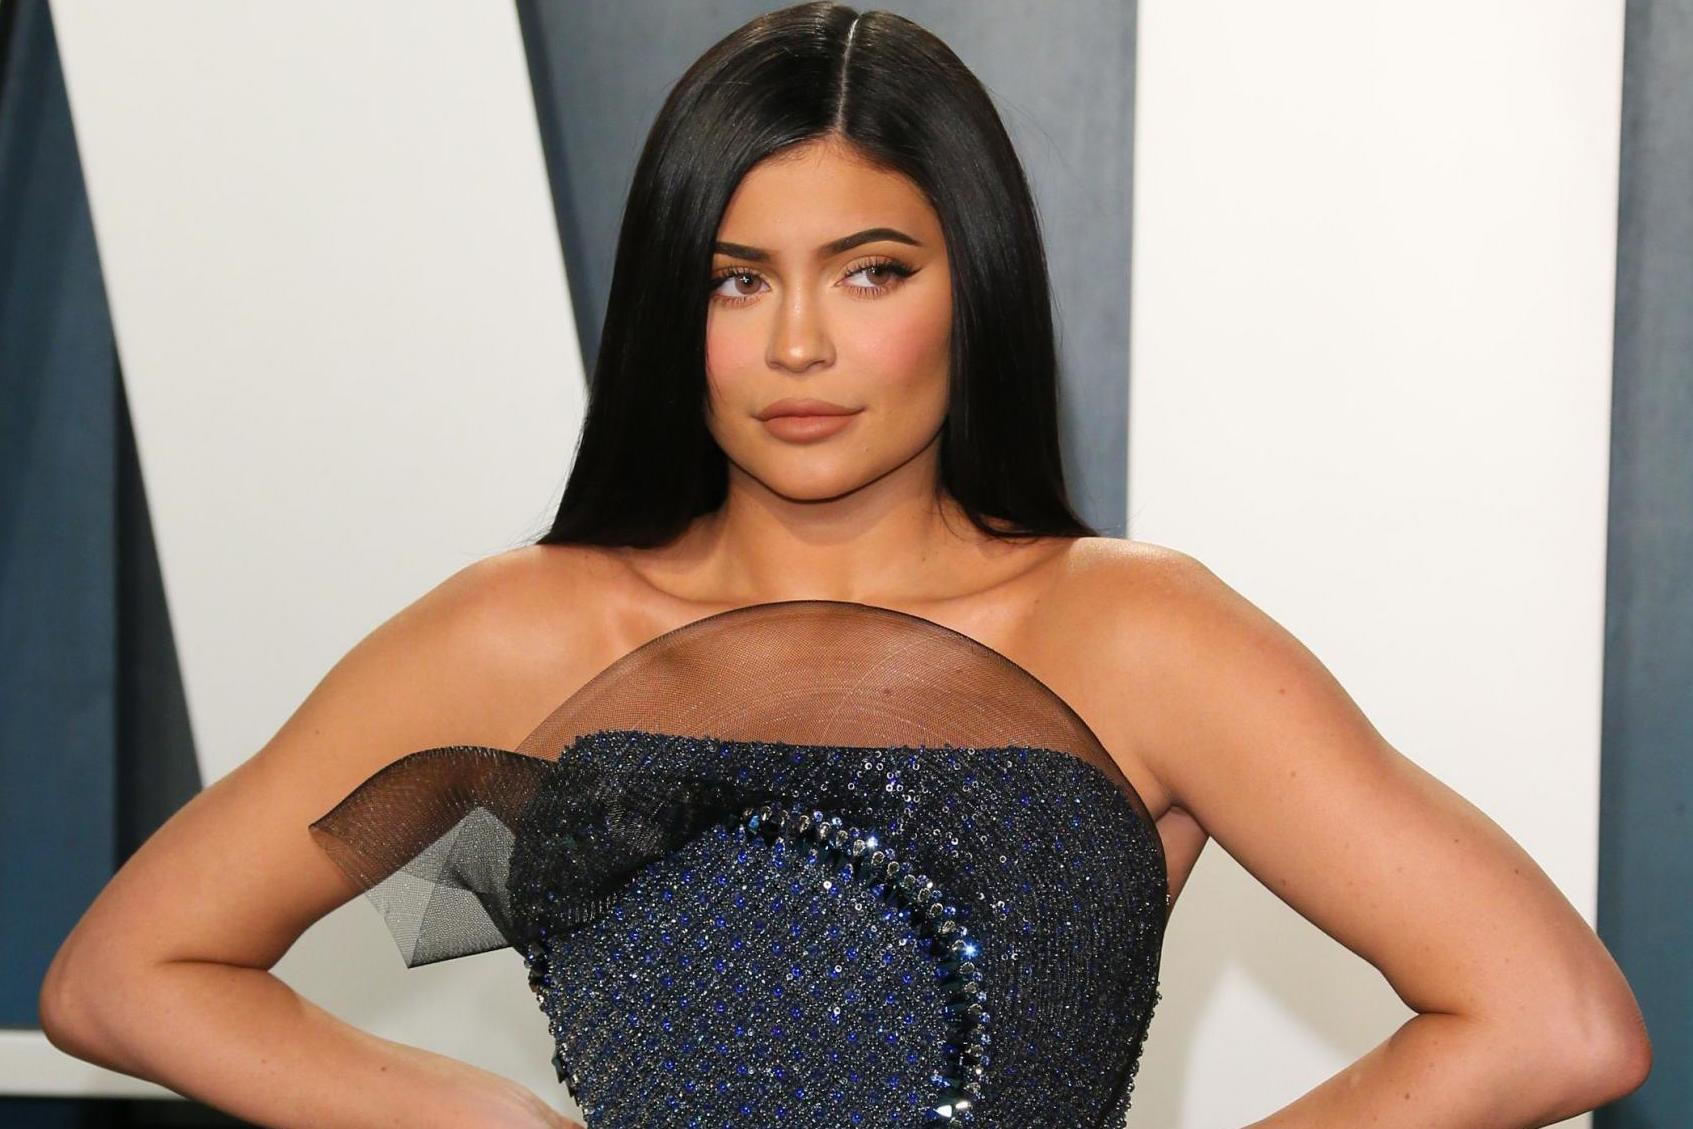 Kylie Jenner Denies Refusing To Tag Black Designer On Instagram This Is Completely False The Independent The Independent